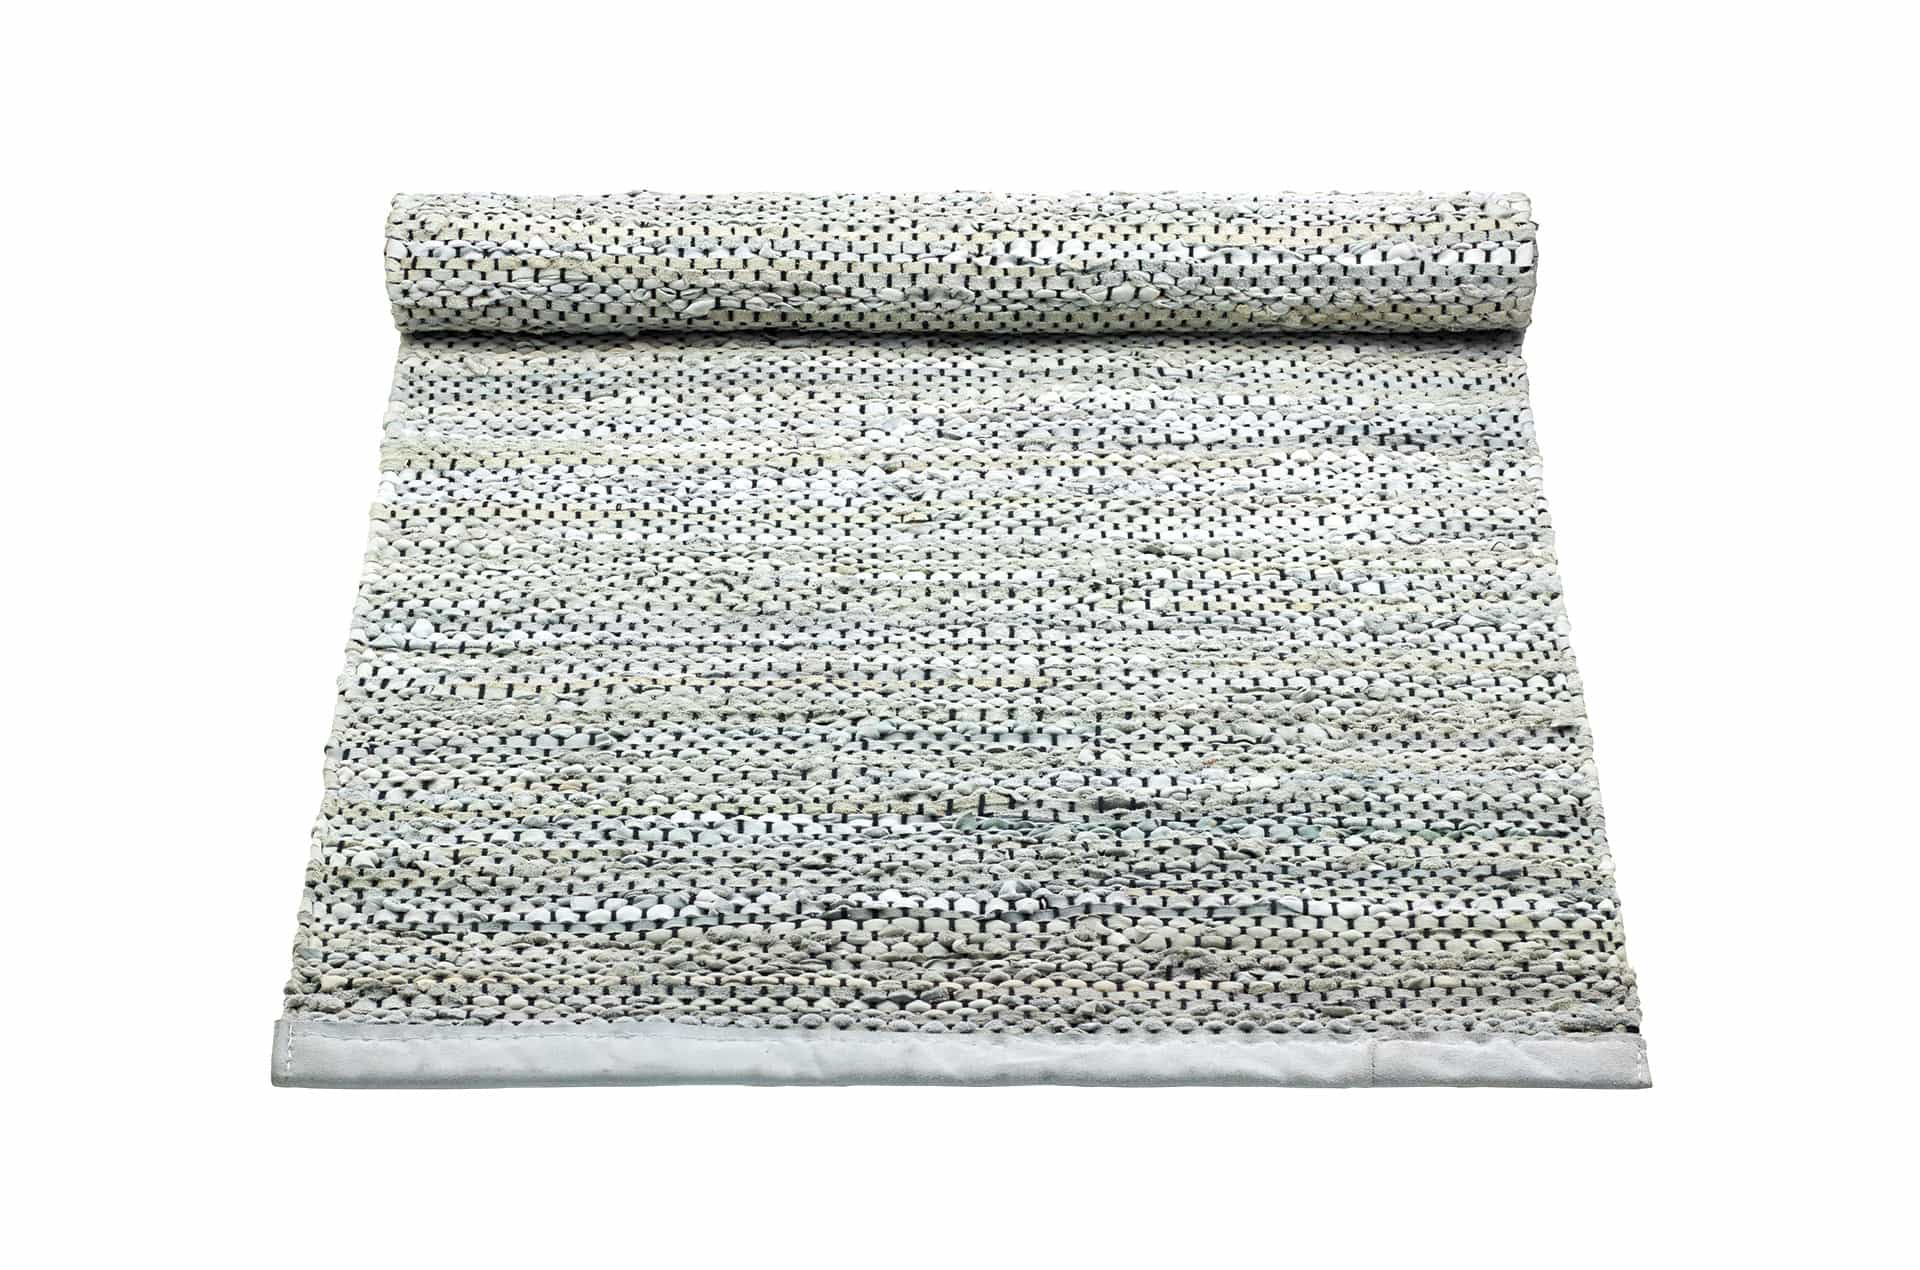 Tapis gris clair 100% cuir recyclé by Rugsolid- PARIDEO design contemporain durable